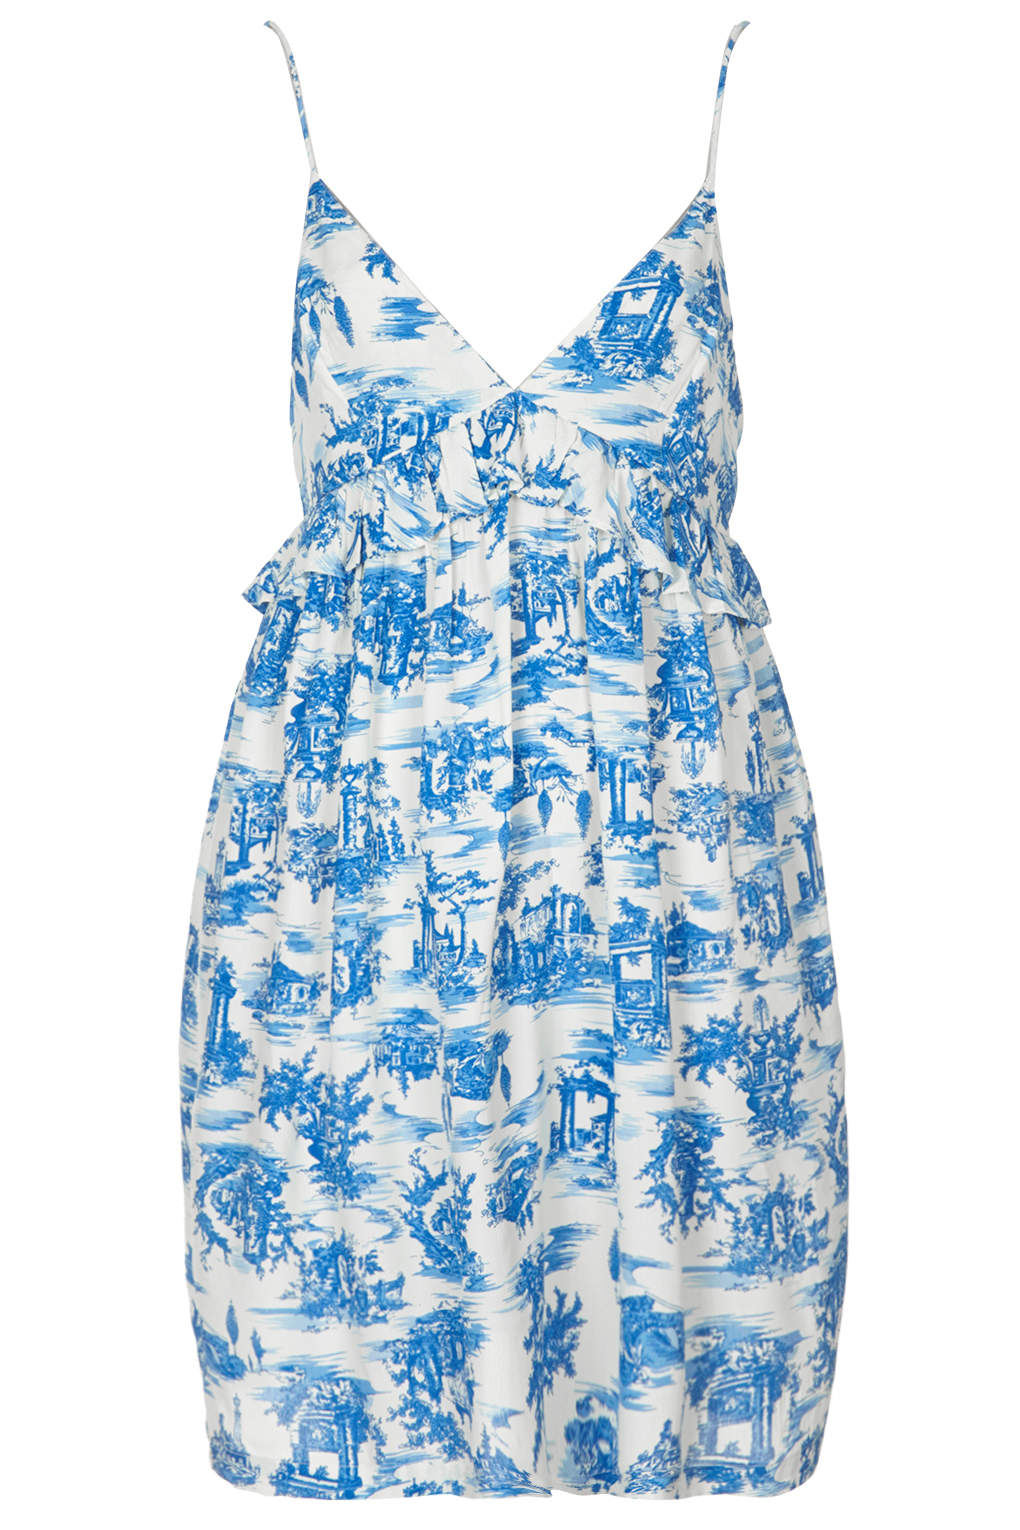 1b0684ee82f Lyst - TOPSHOP Toile Print Babydoll Dress in Blue